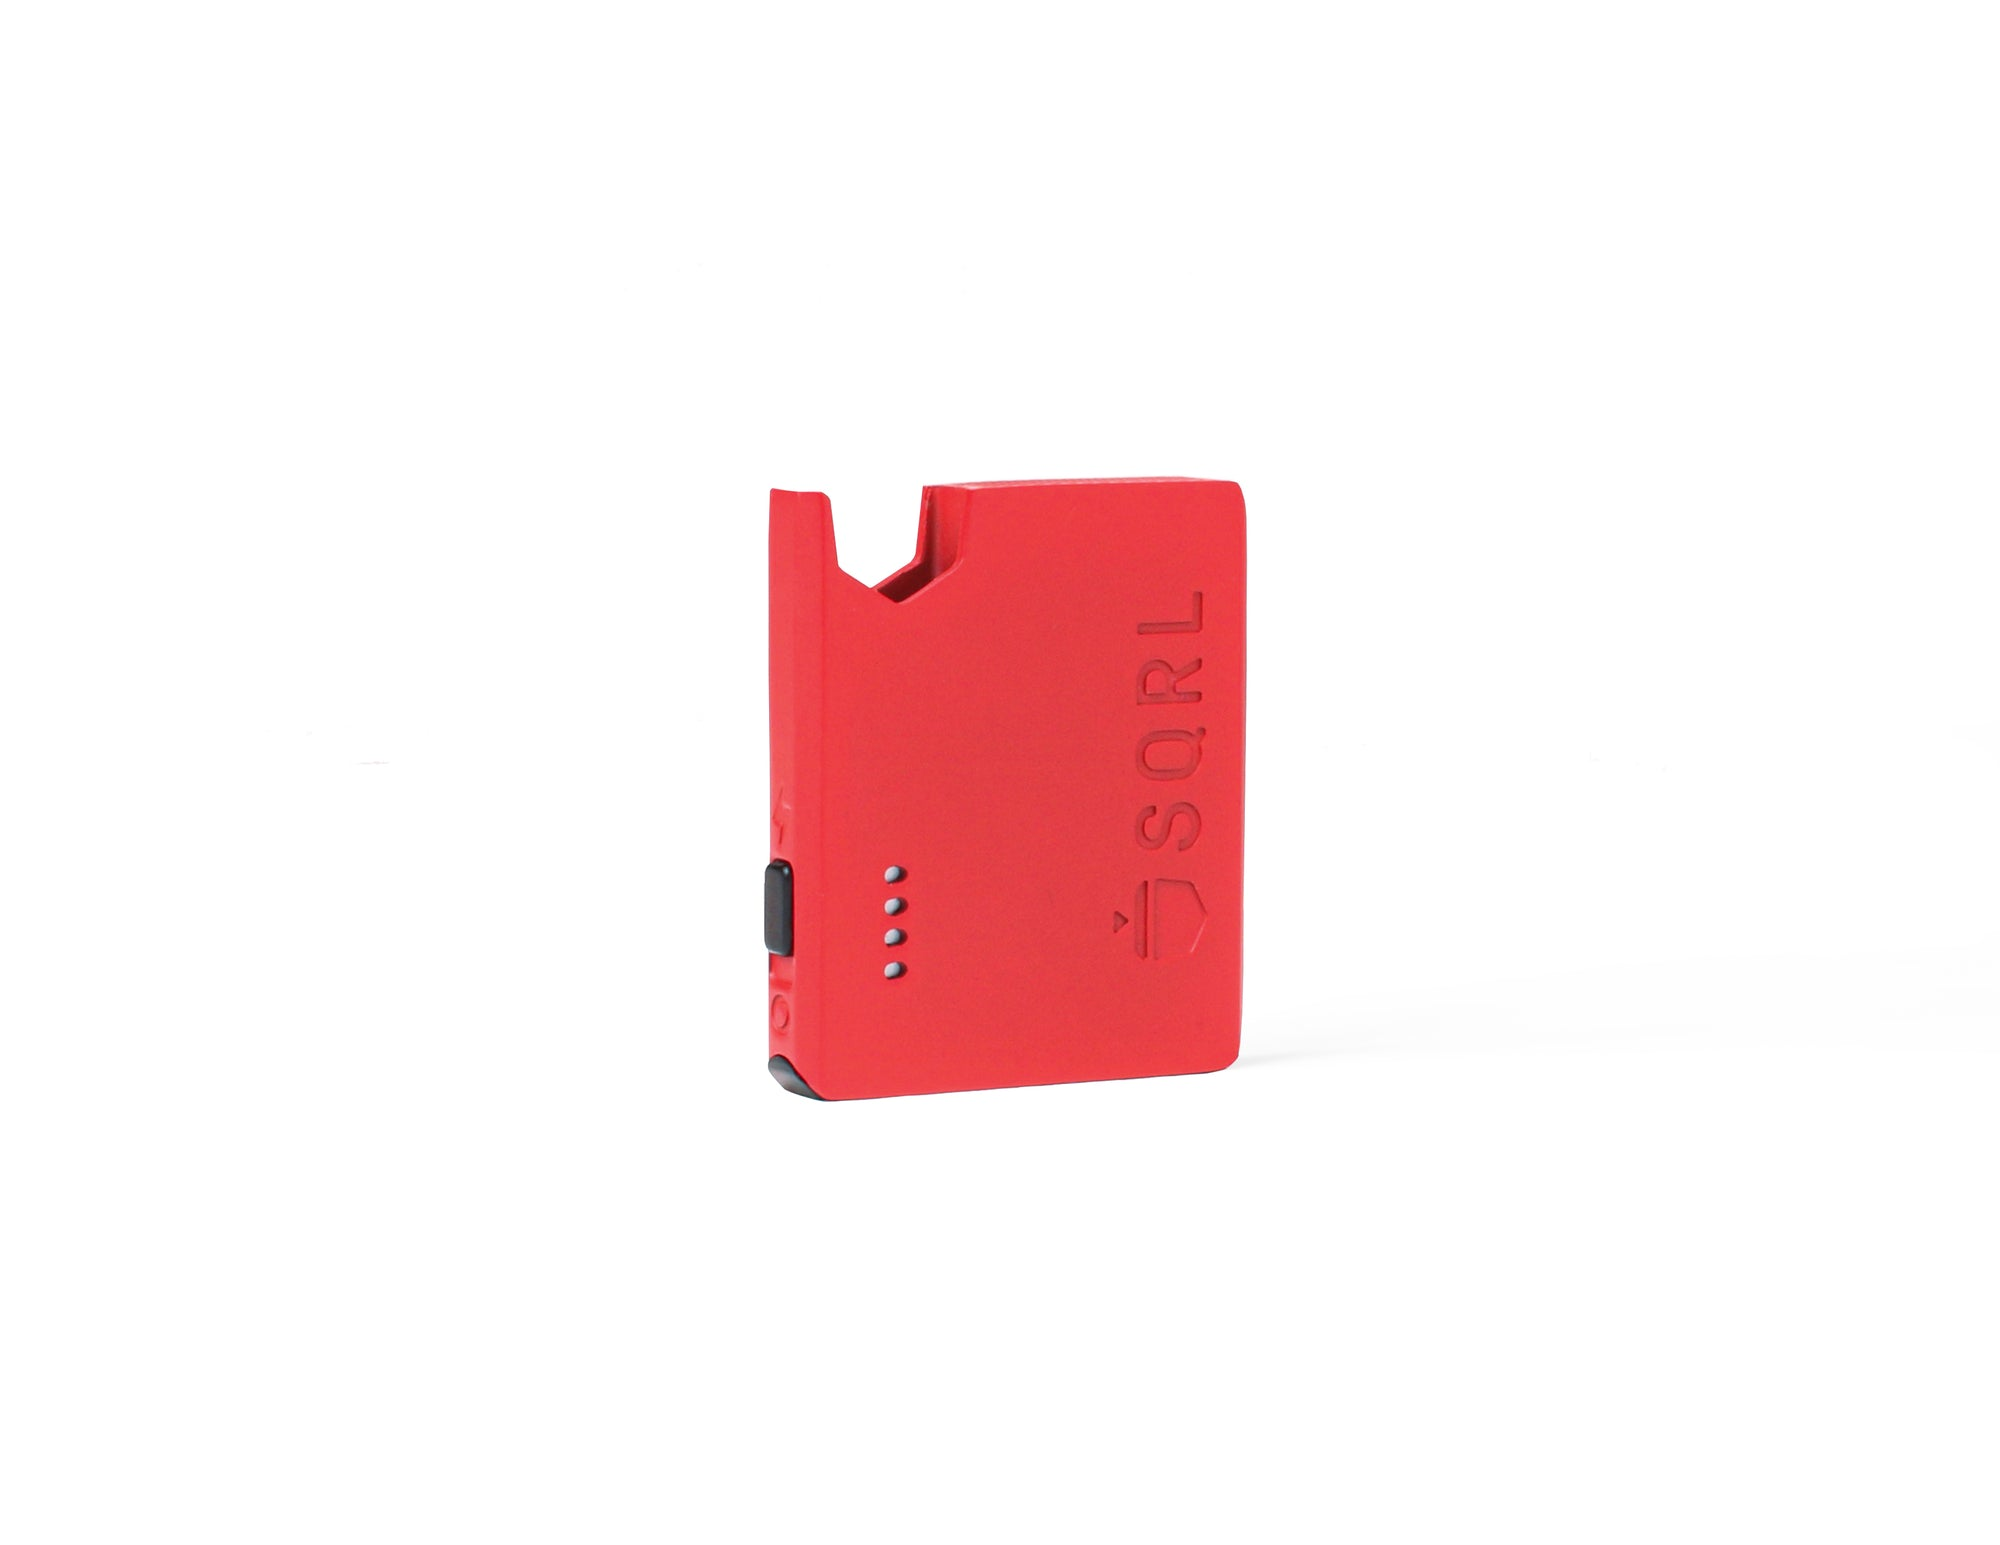 SQRL NCT Compatible Pod Device - Red